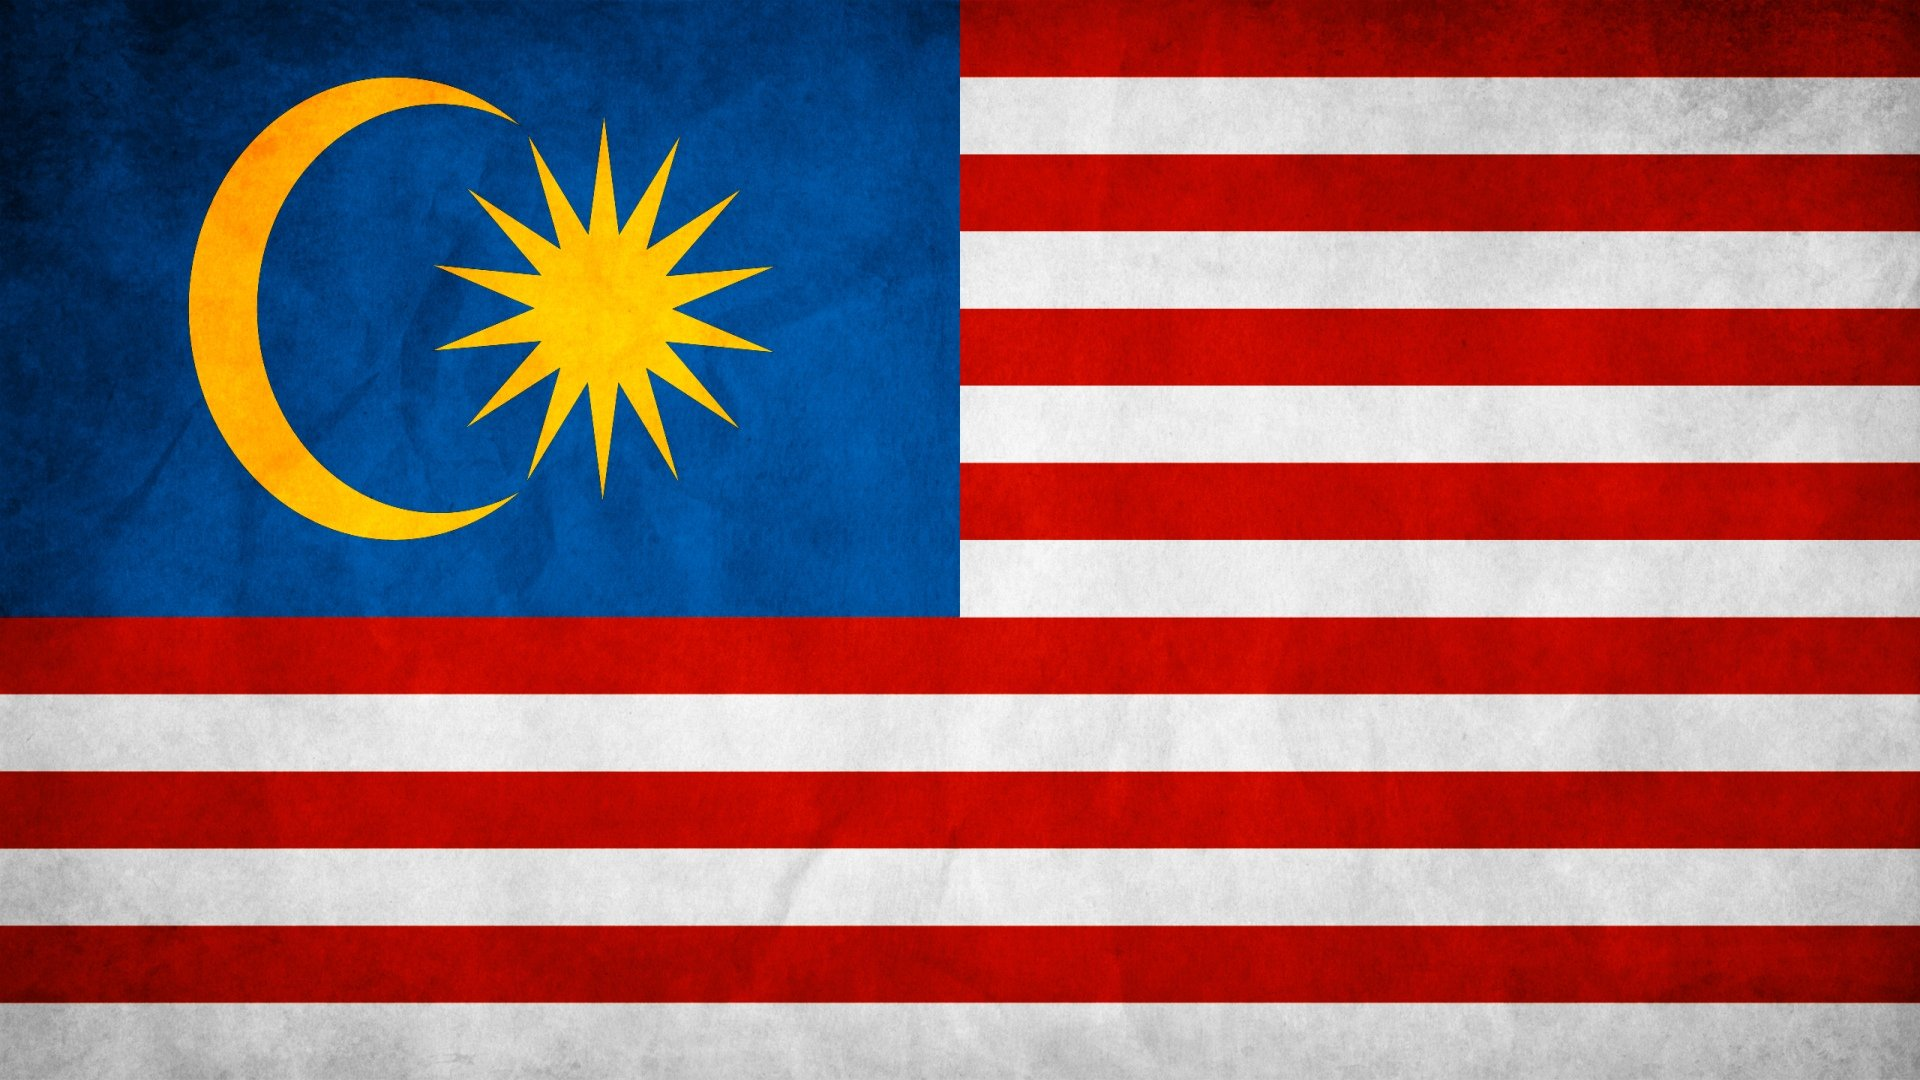 Download Malaysia Flag Wallpaper High Definition High Quality 1920x1080